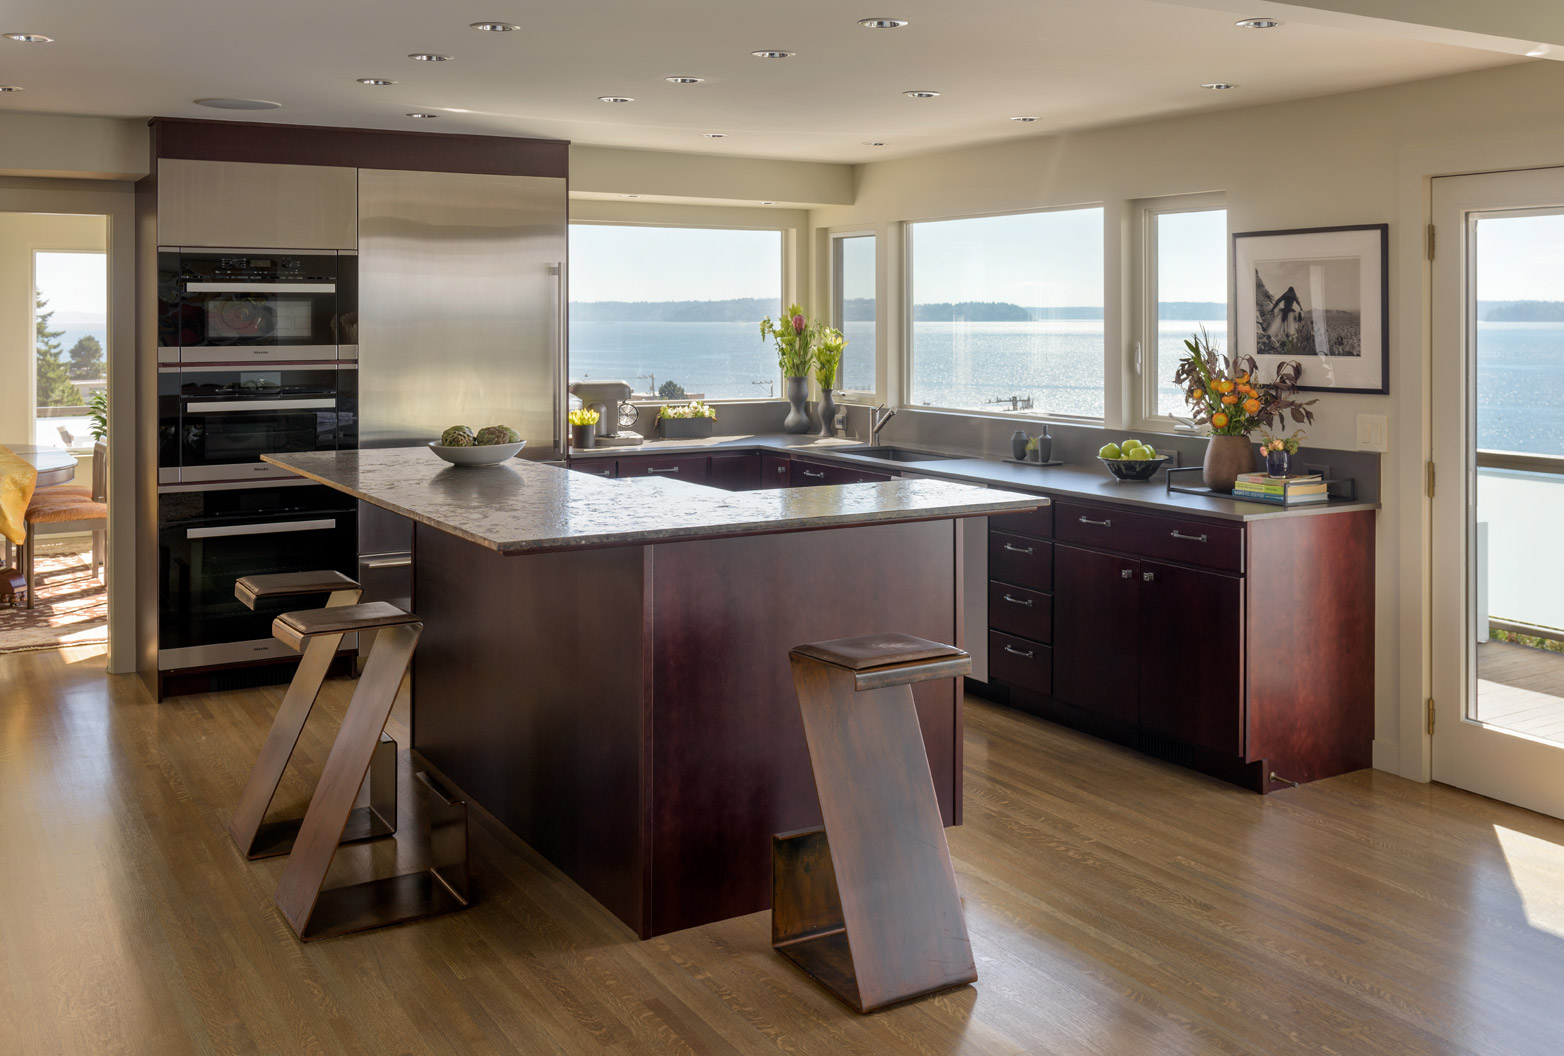 Art-House-kitchen-island-with-view-276x